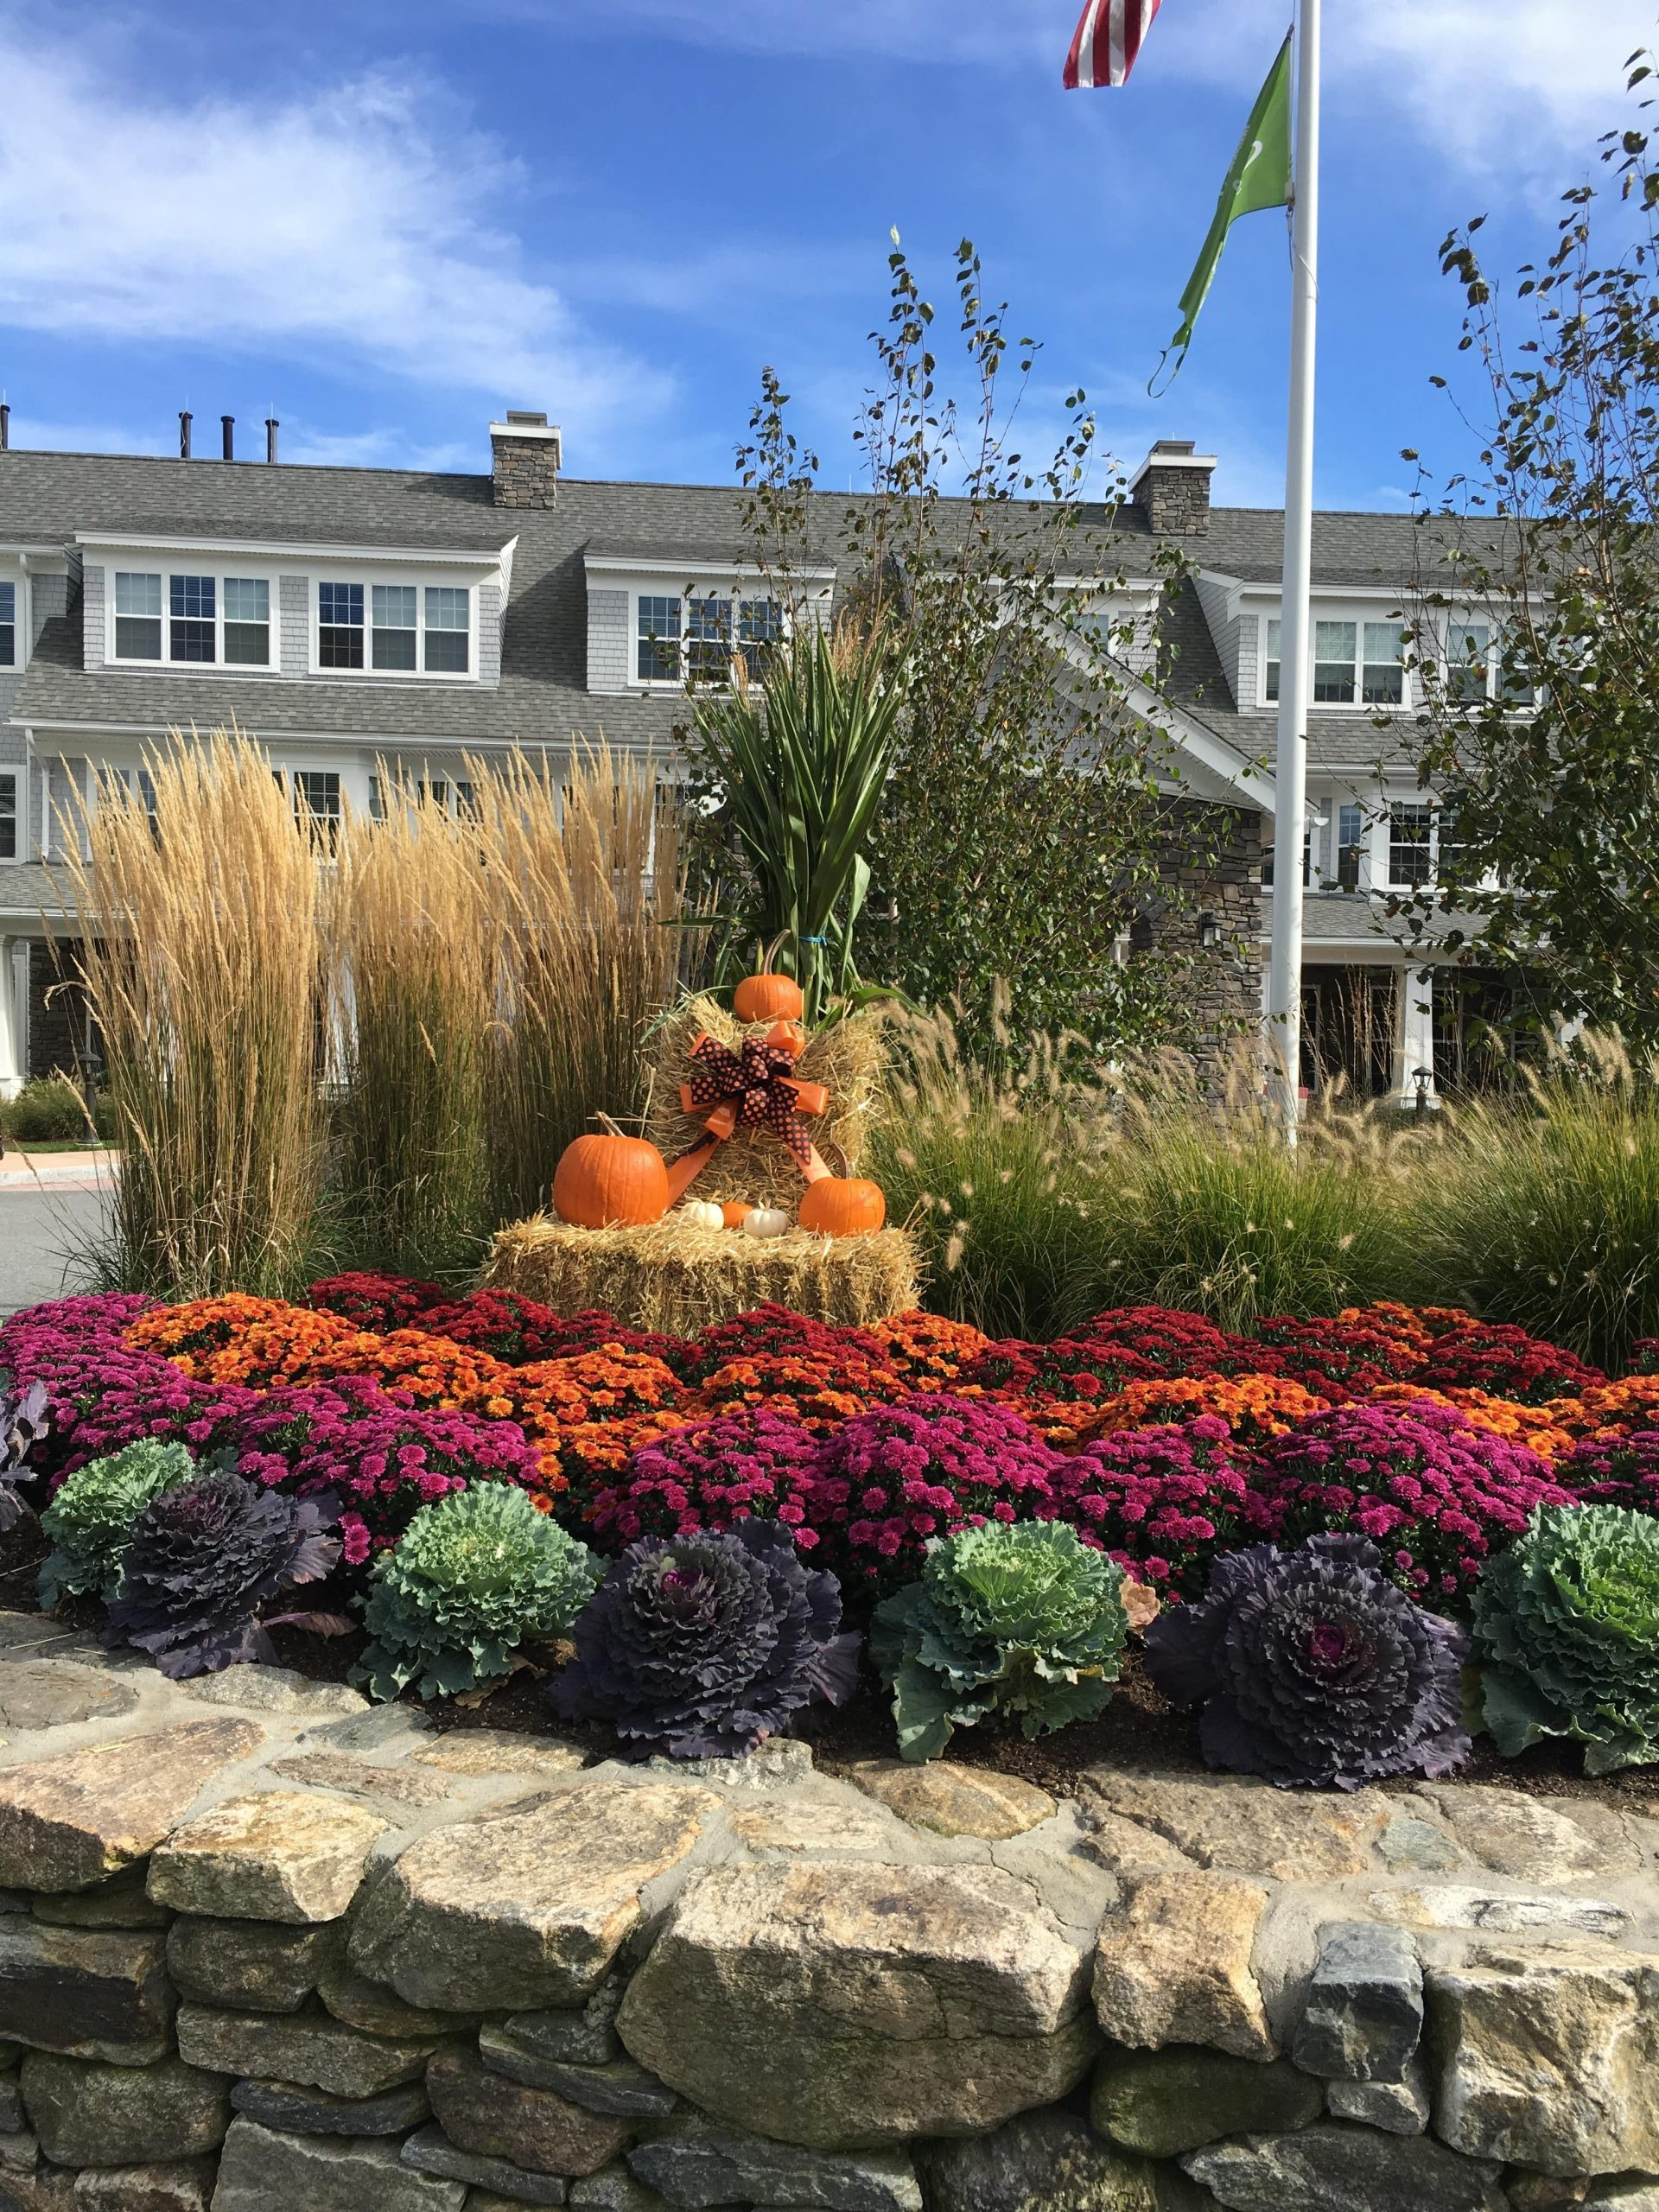 Fall landscaping display complete with pumpkins, flowers, and hay.